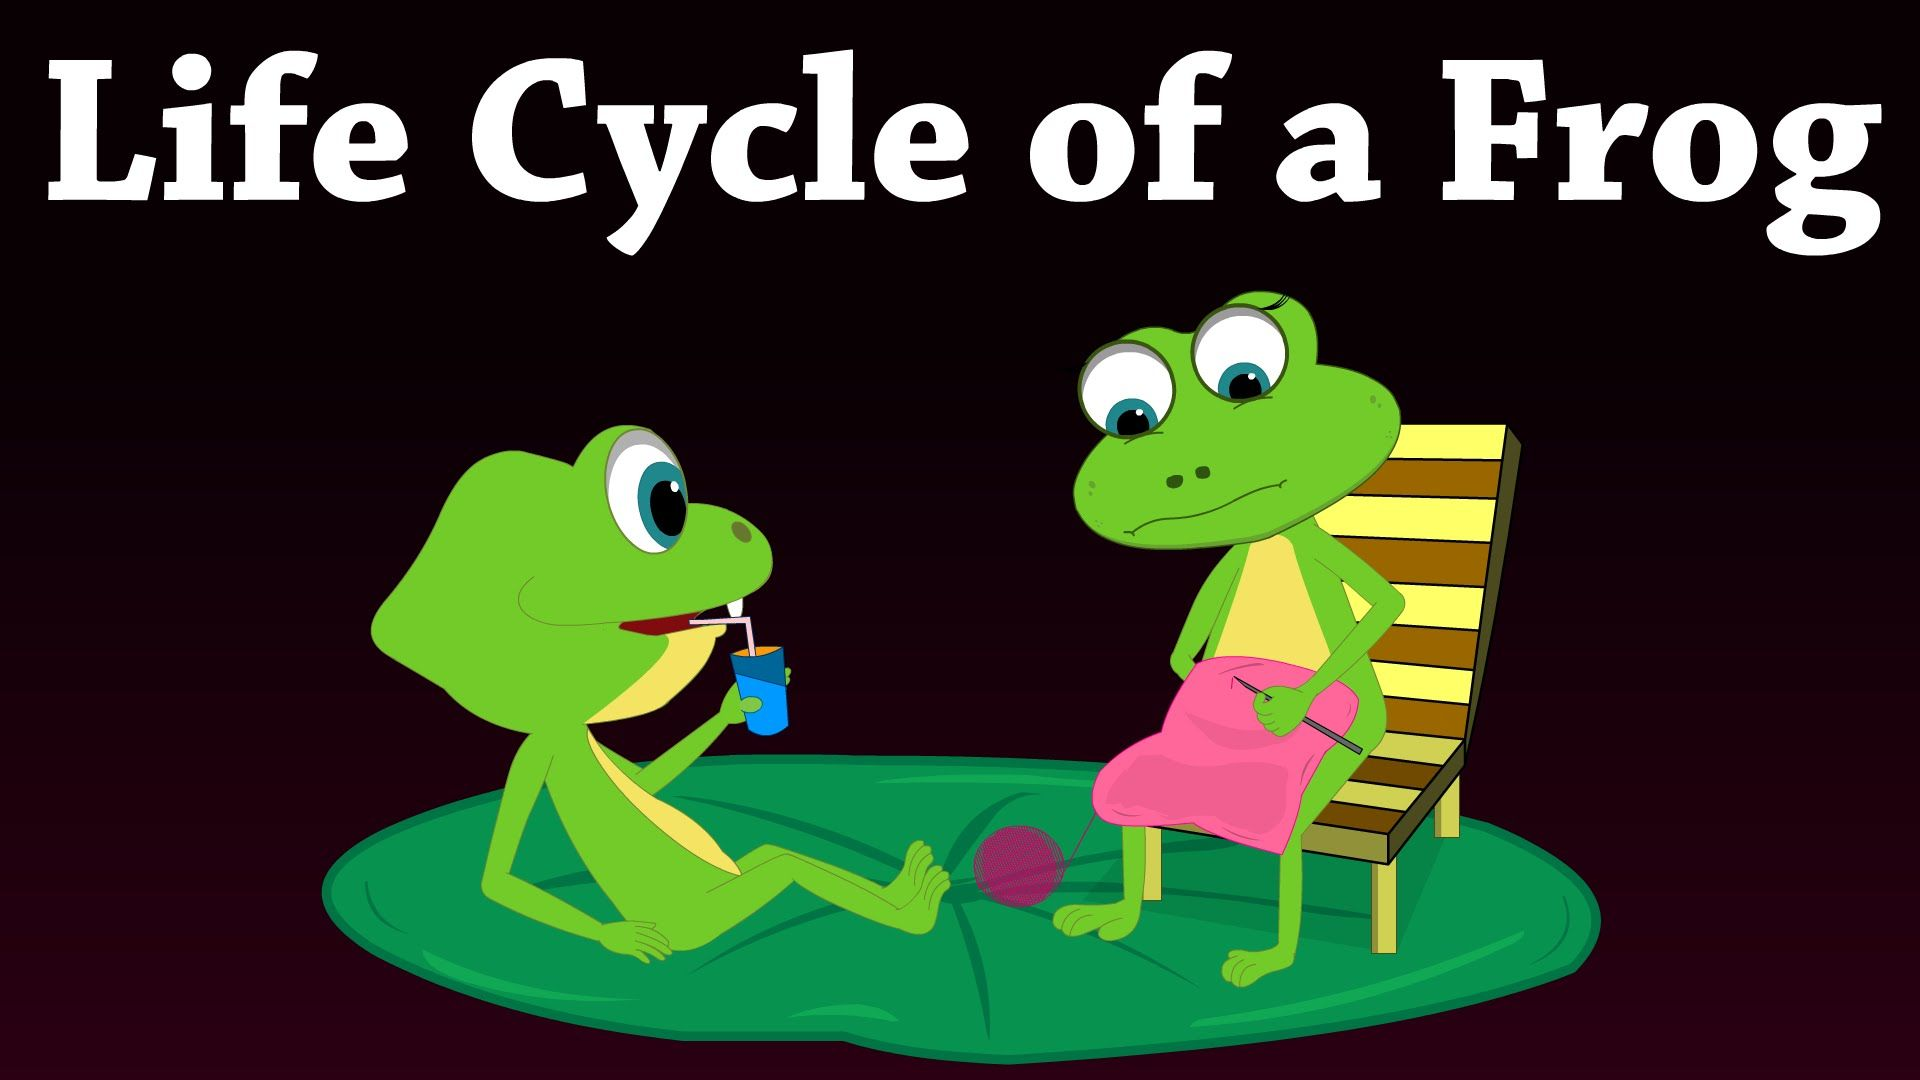 You Will Learn About Life Cycle Of A Frog In This Video